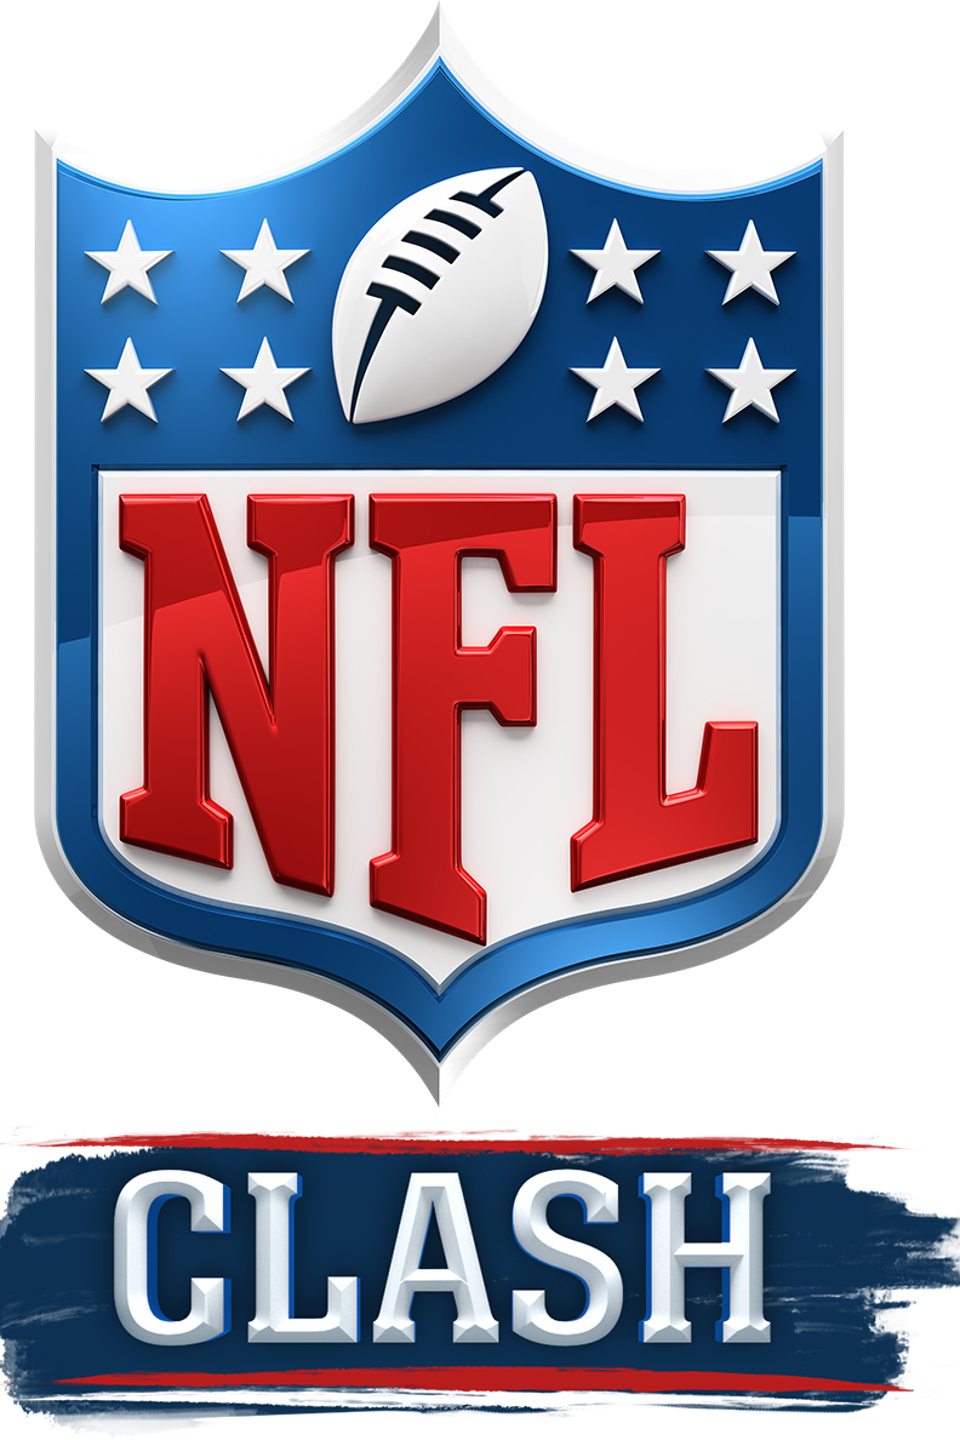 The logo for the new NFL Clash game to be released in 2020.